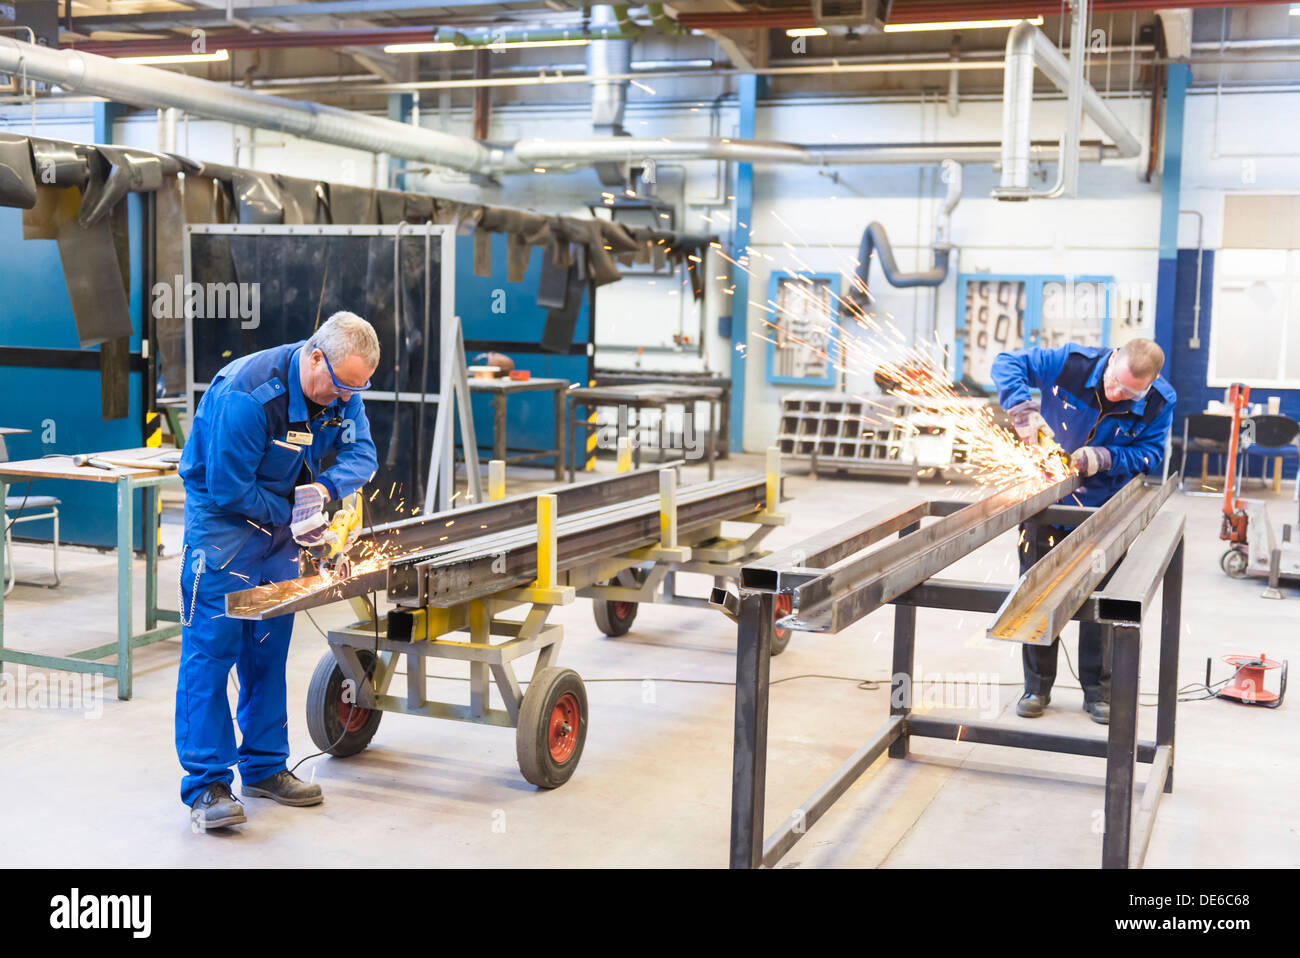 In an industrial setting, two workers craft and hone the metal extrusions for a construction project. - Stock Image